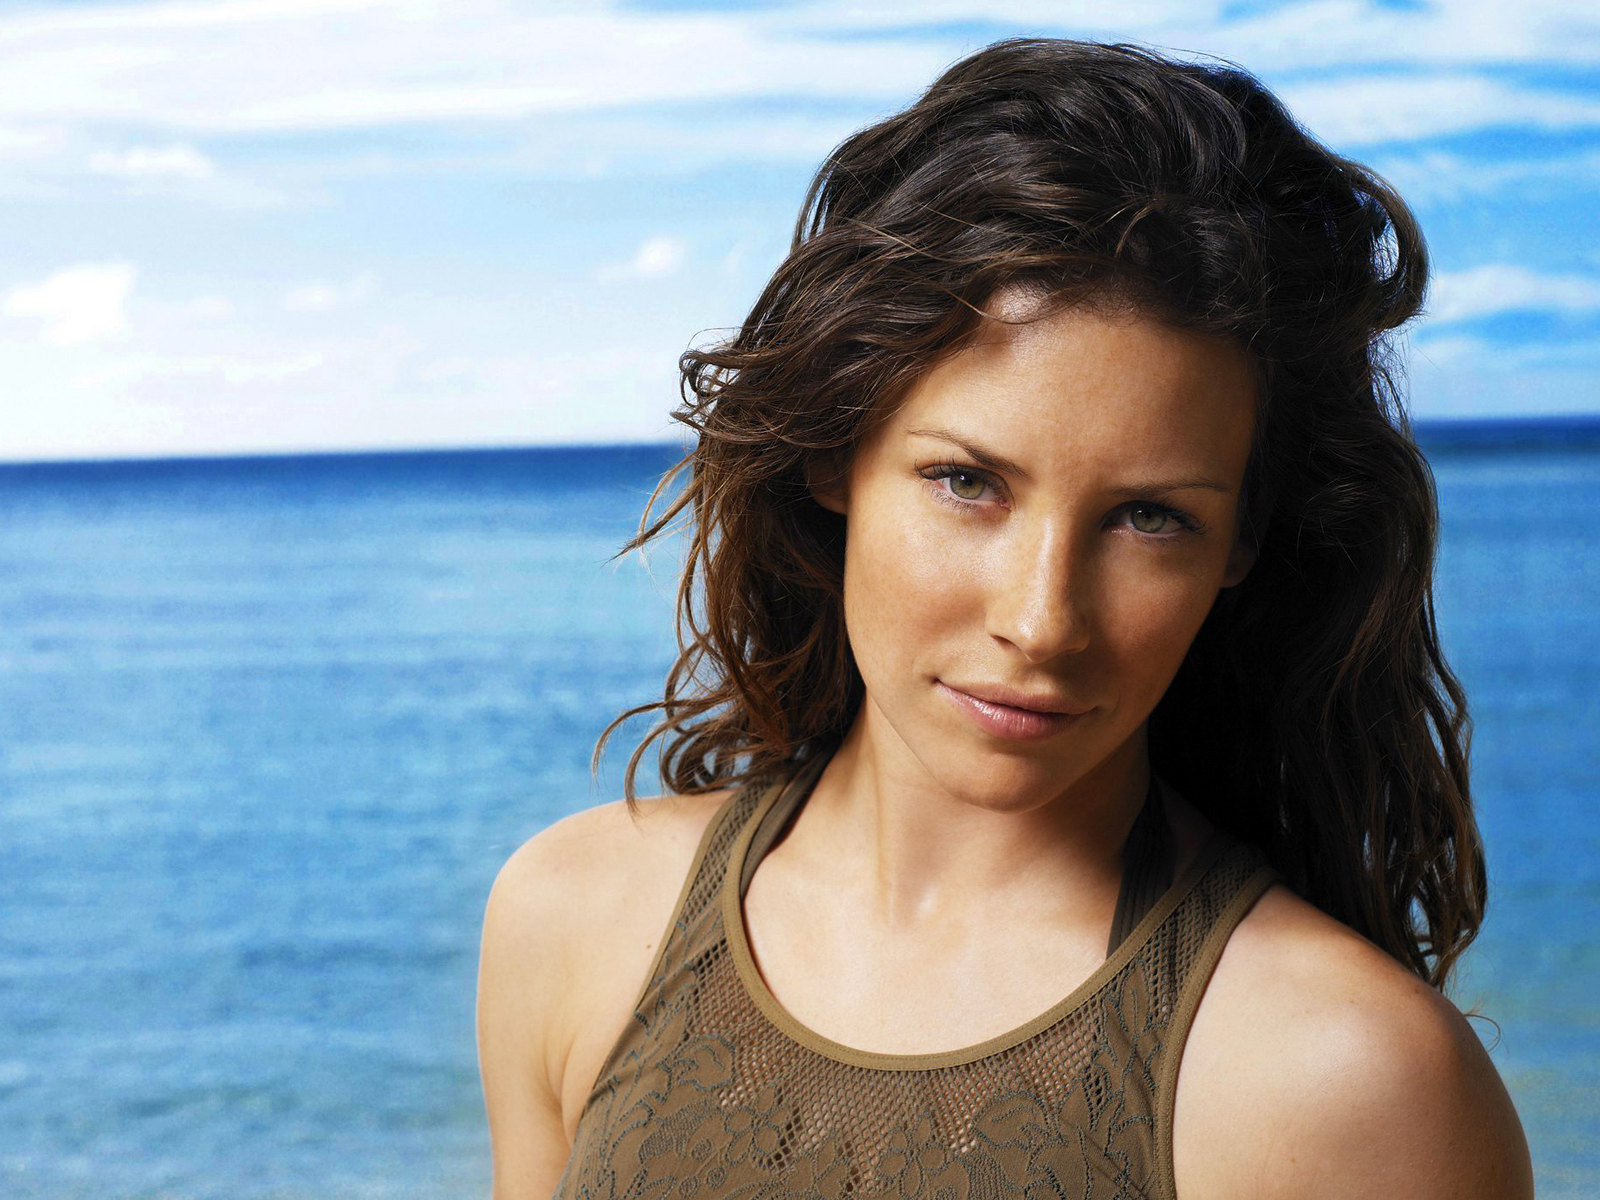 Evangeline Lilly 3 wallpapers Evangeline Lilly 3 stock photos 1600x1200